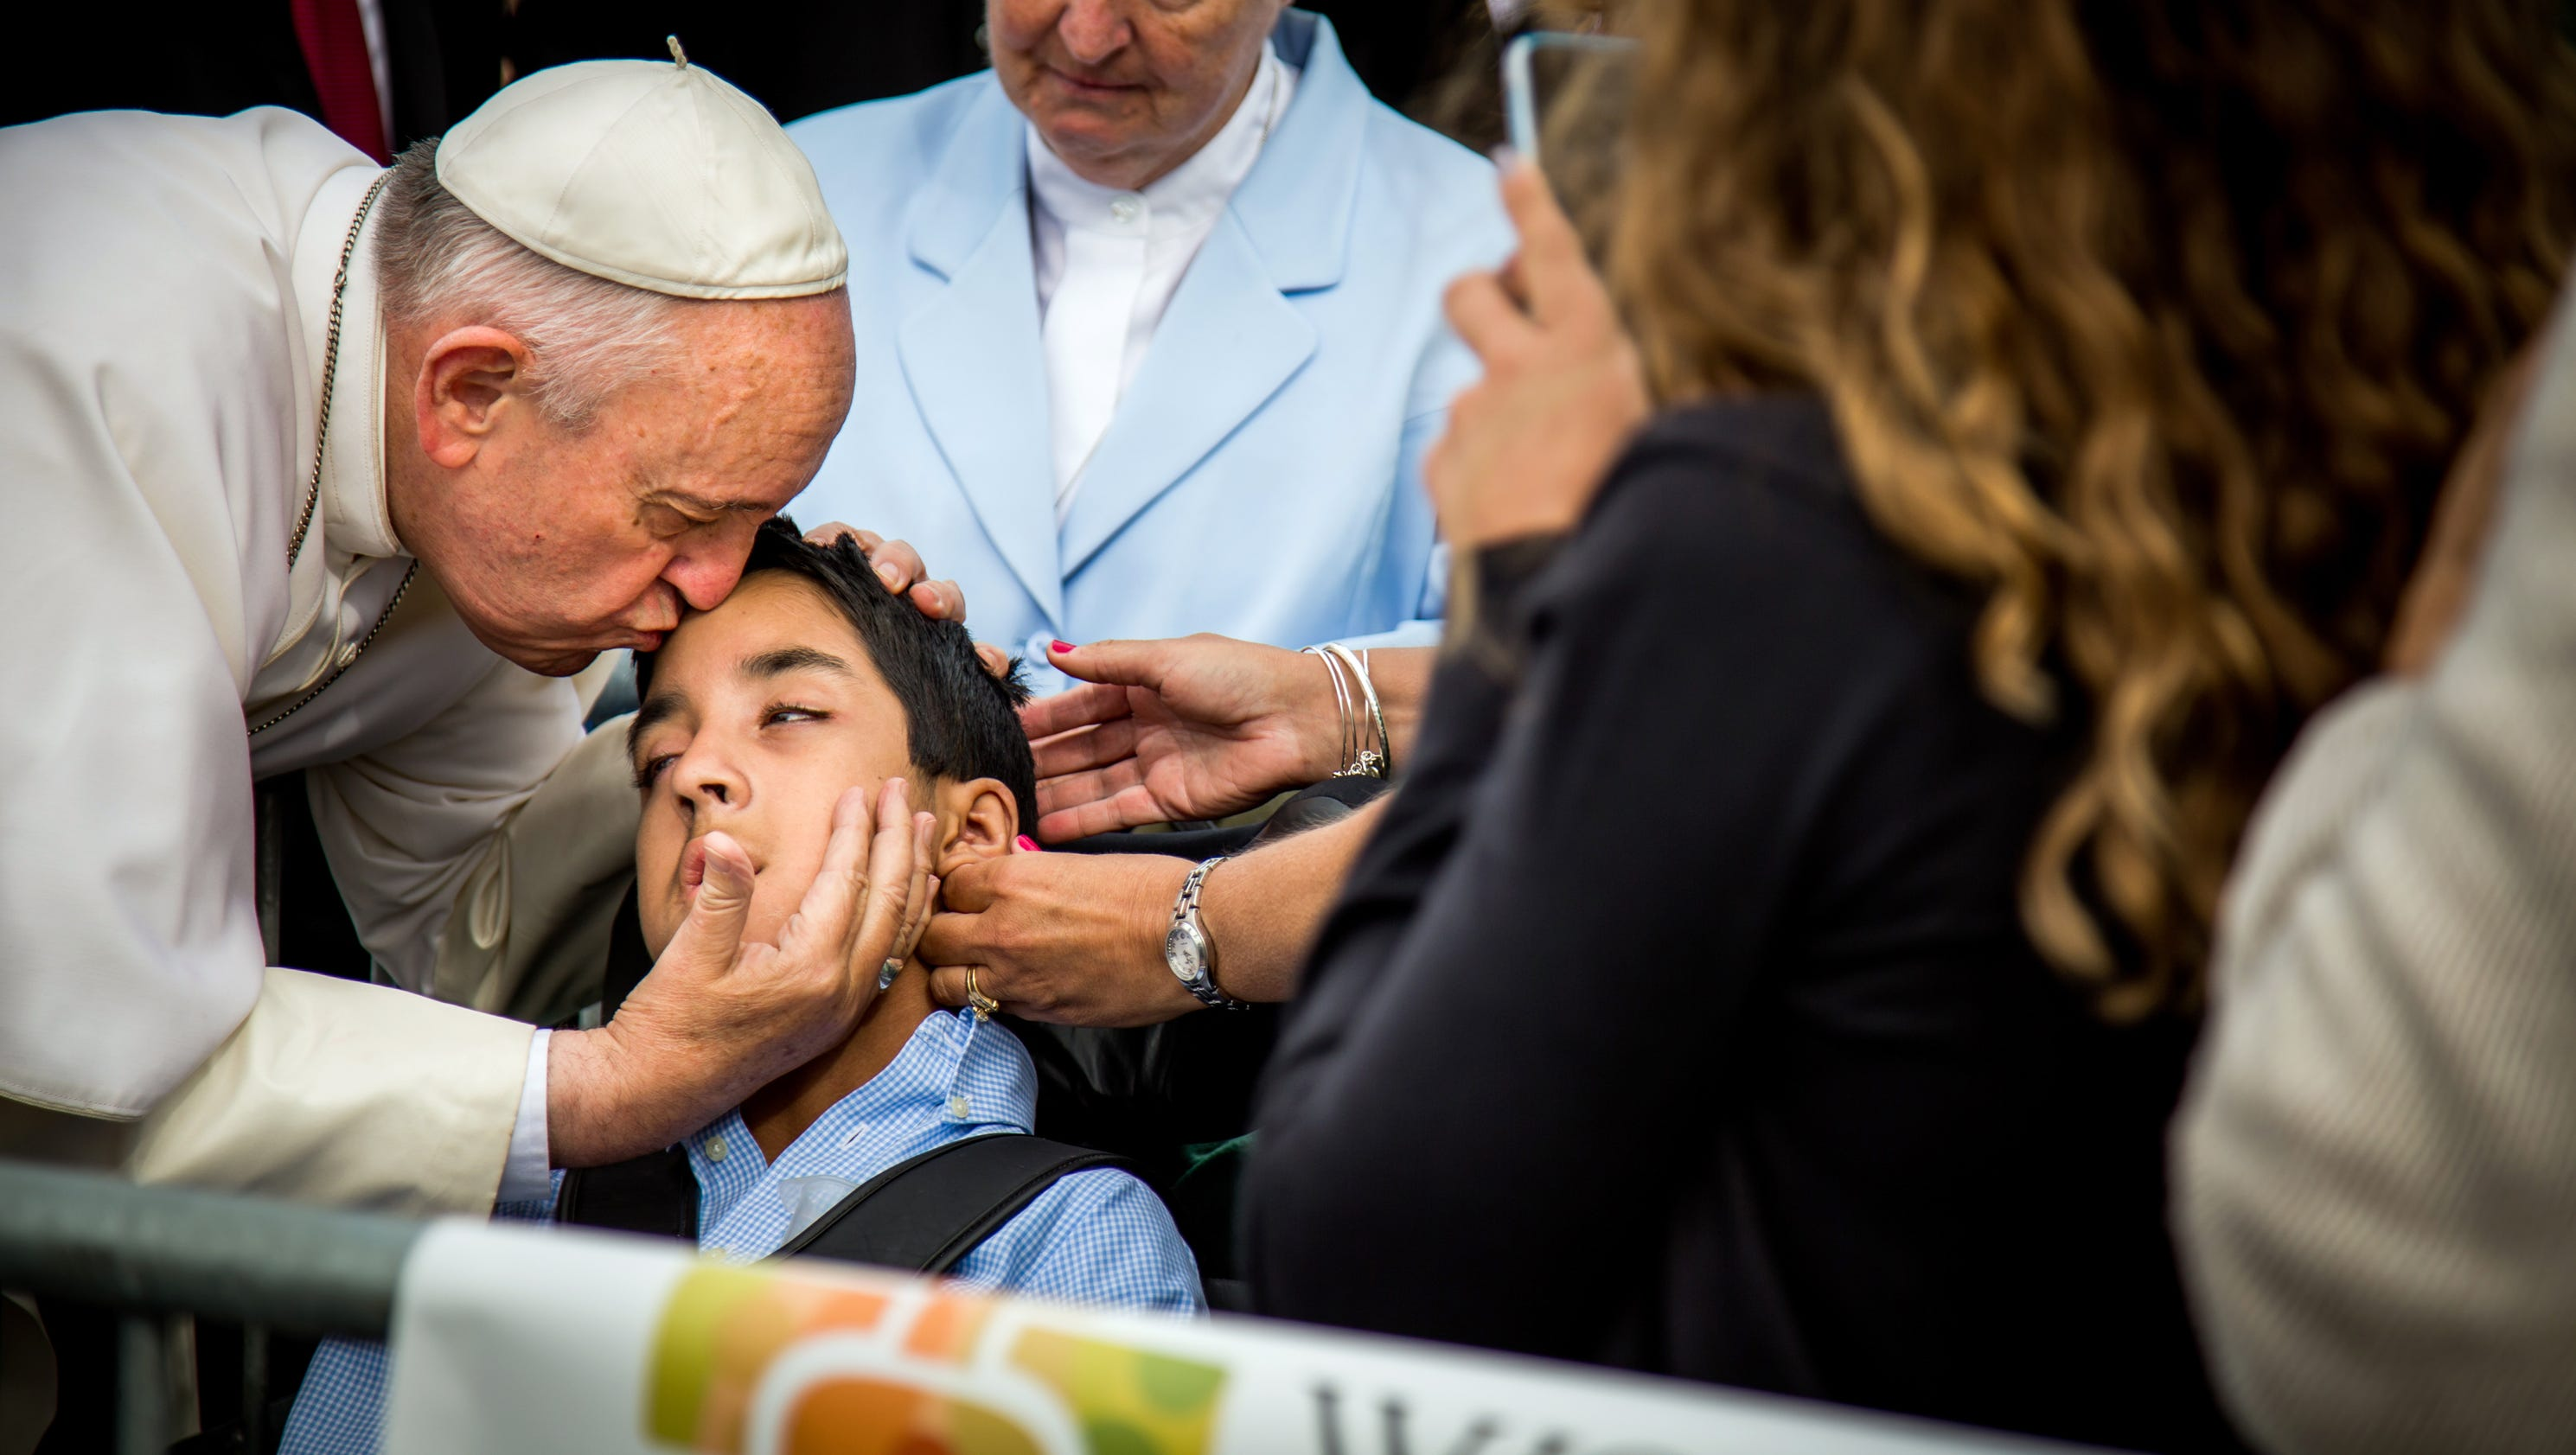 pope francis stops fiat to bless boy in wheelchair